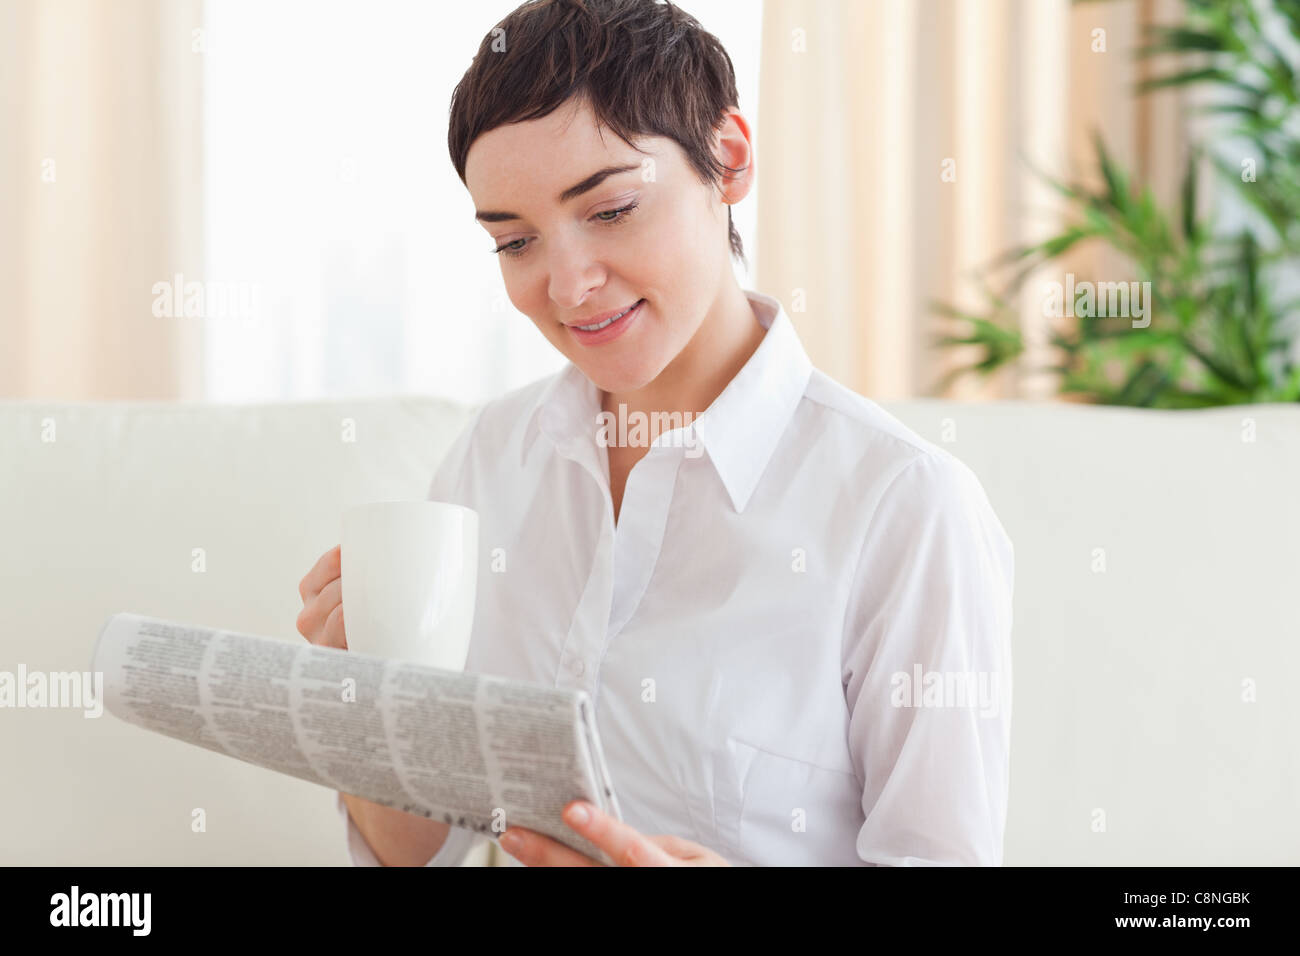 Brunette woman with a cup and a newspaper - Stock Image